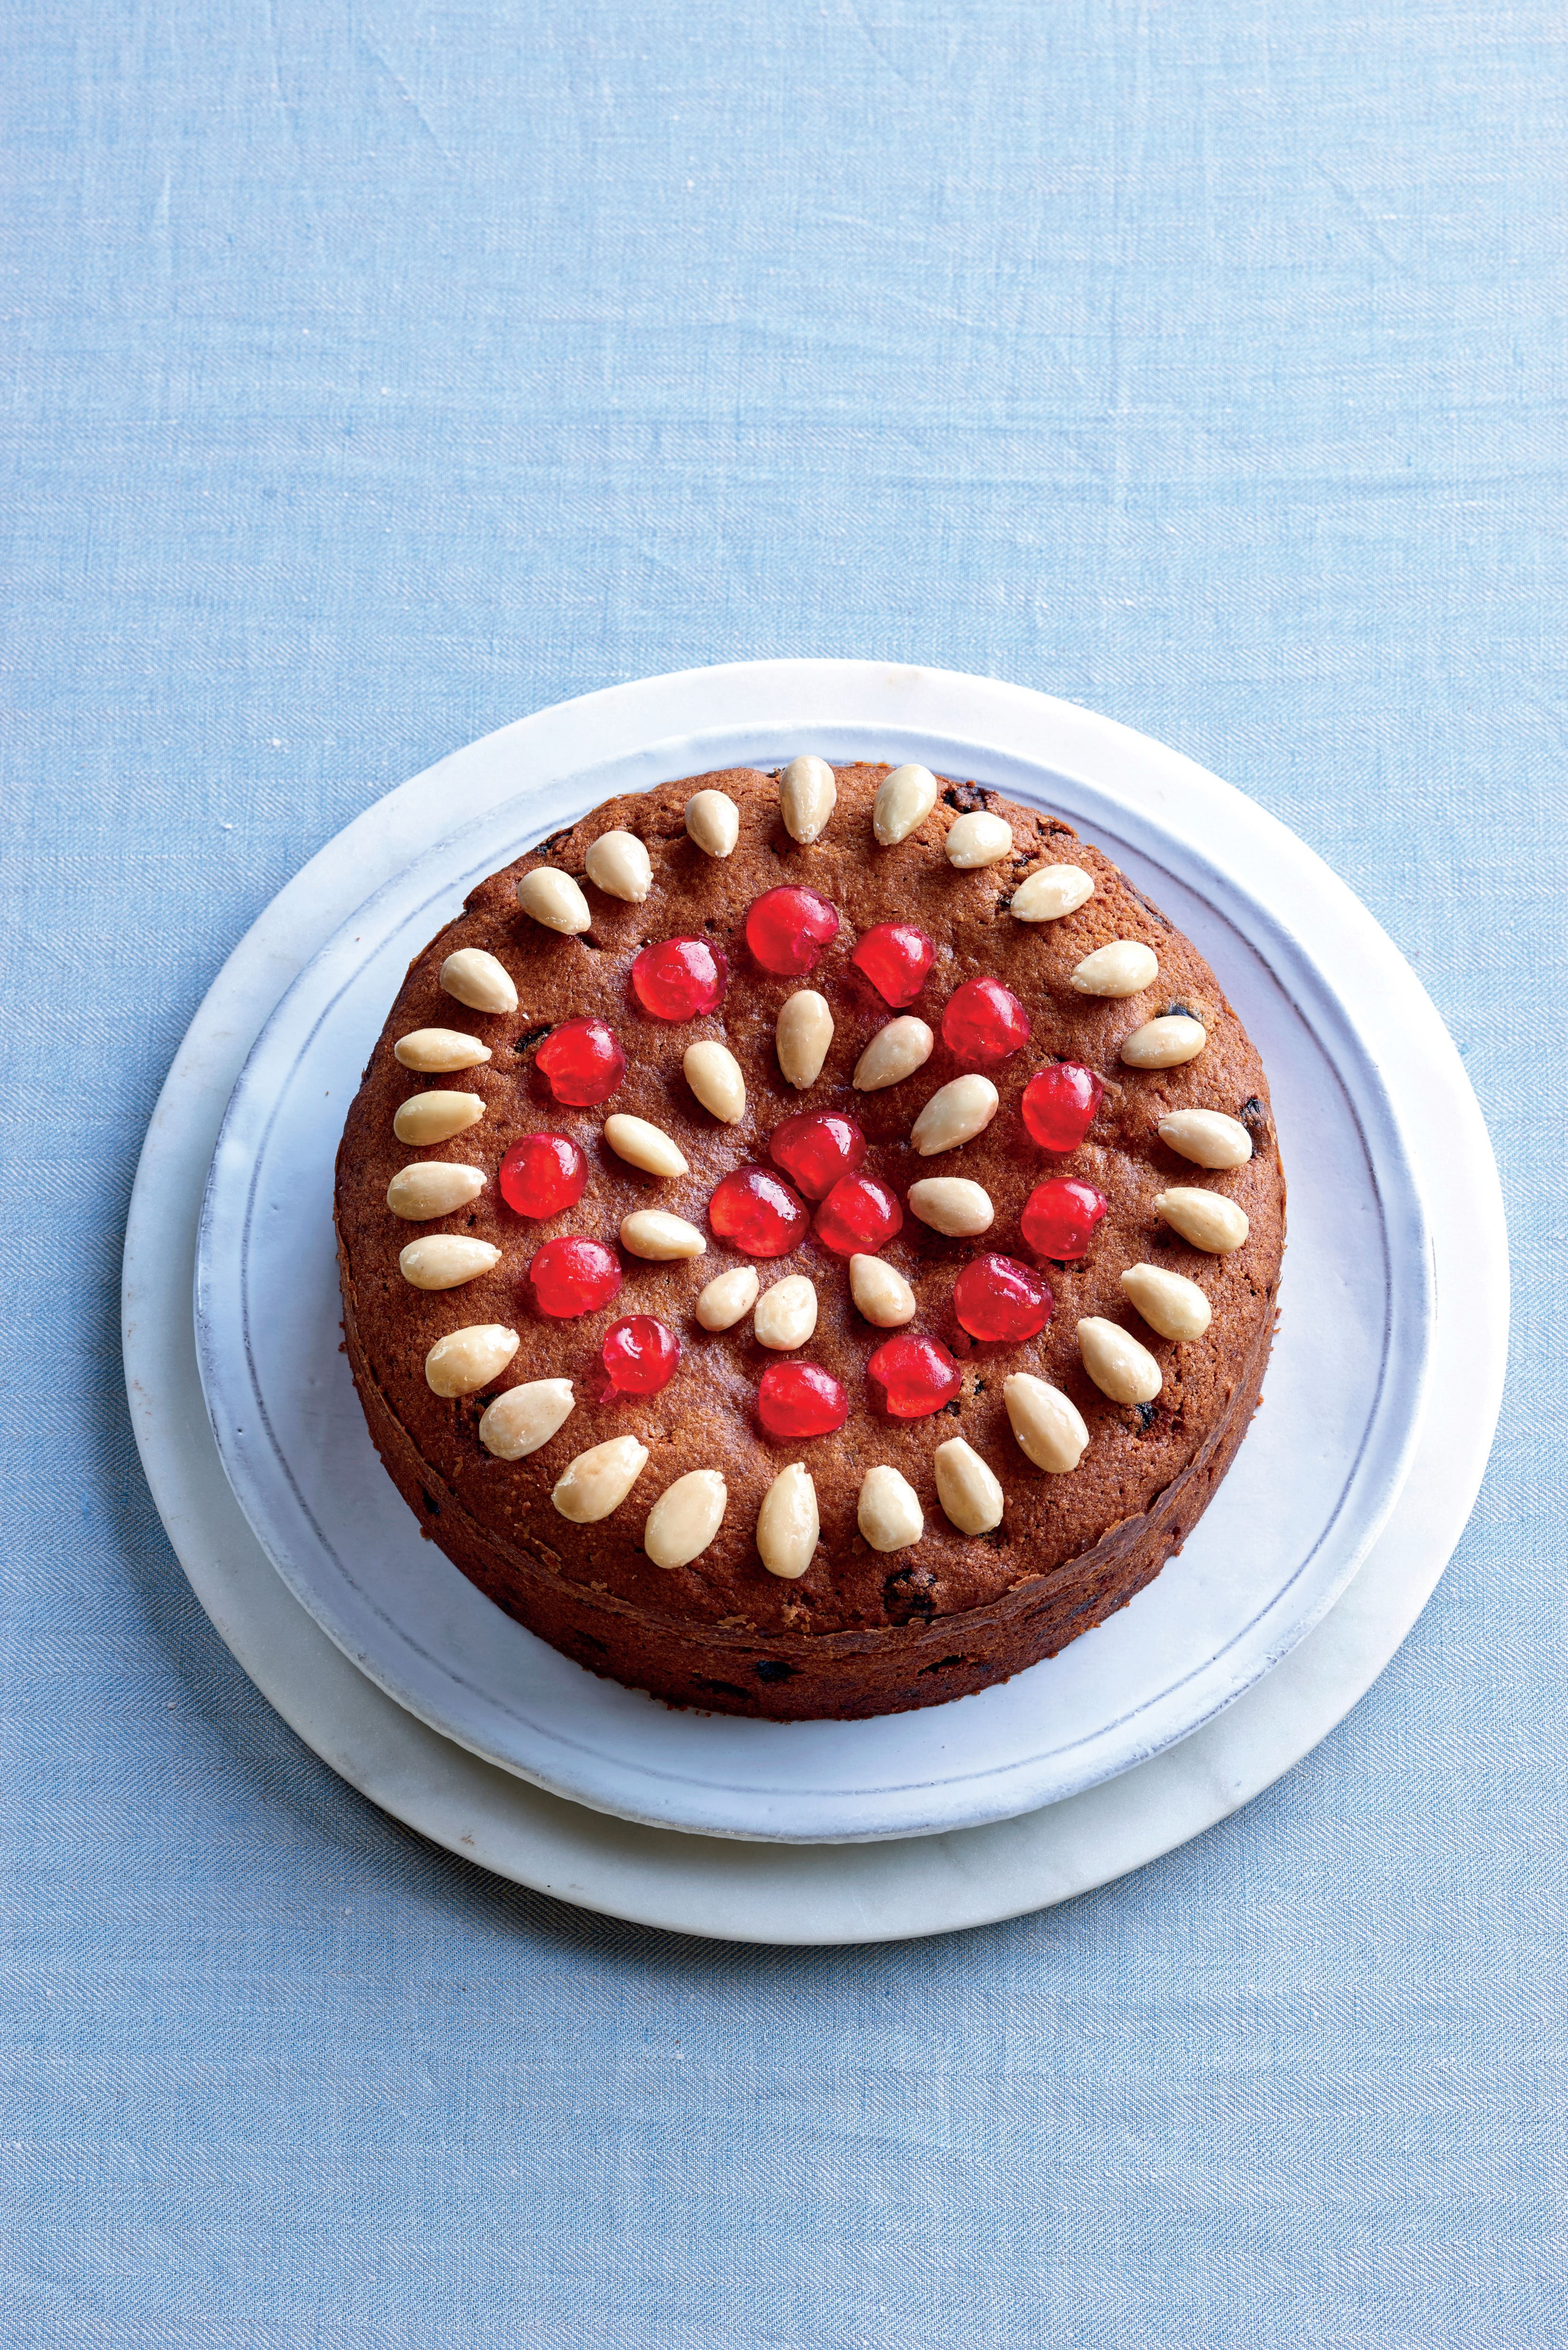 Glacé fruit and nut cake